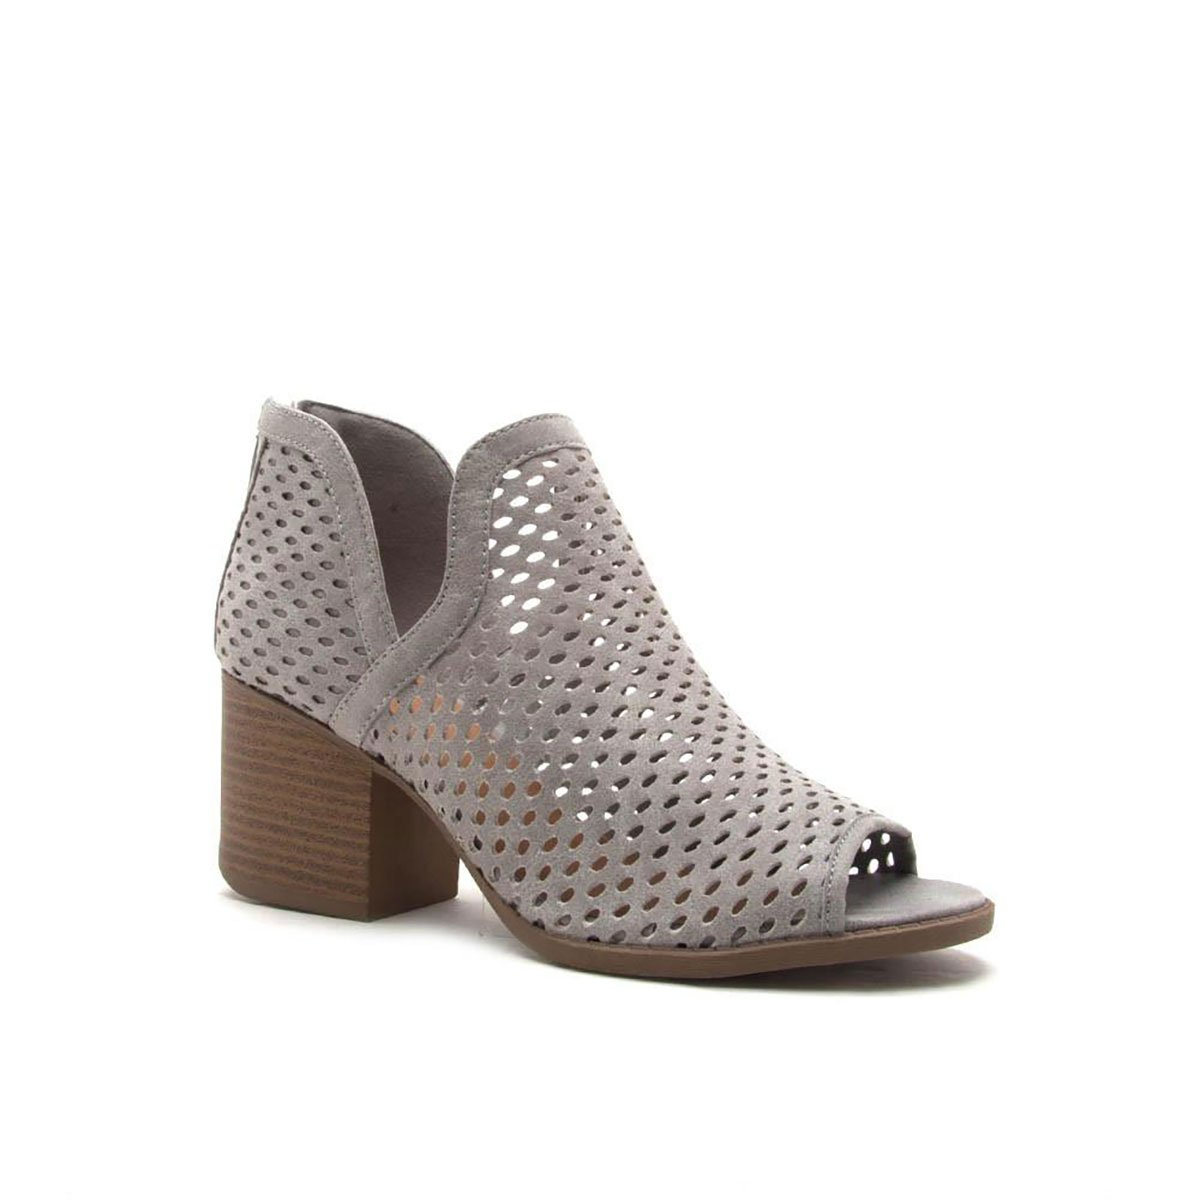 Qupid Perforated Ankle Bootie Boots CORE-27 B076FK56S6 7 B(M) US|Light Grey